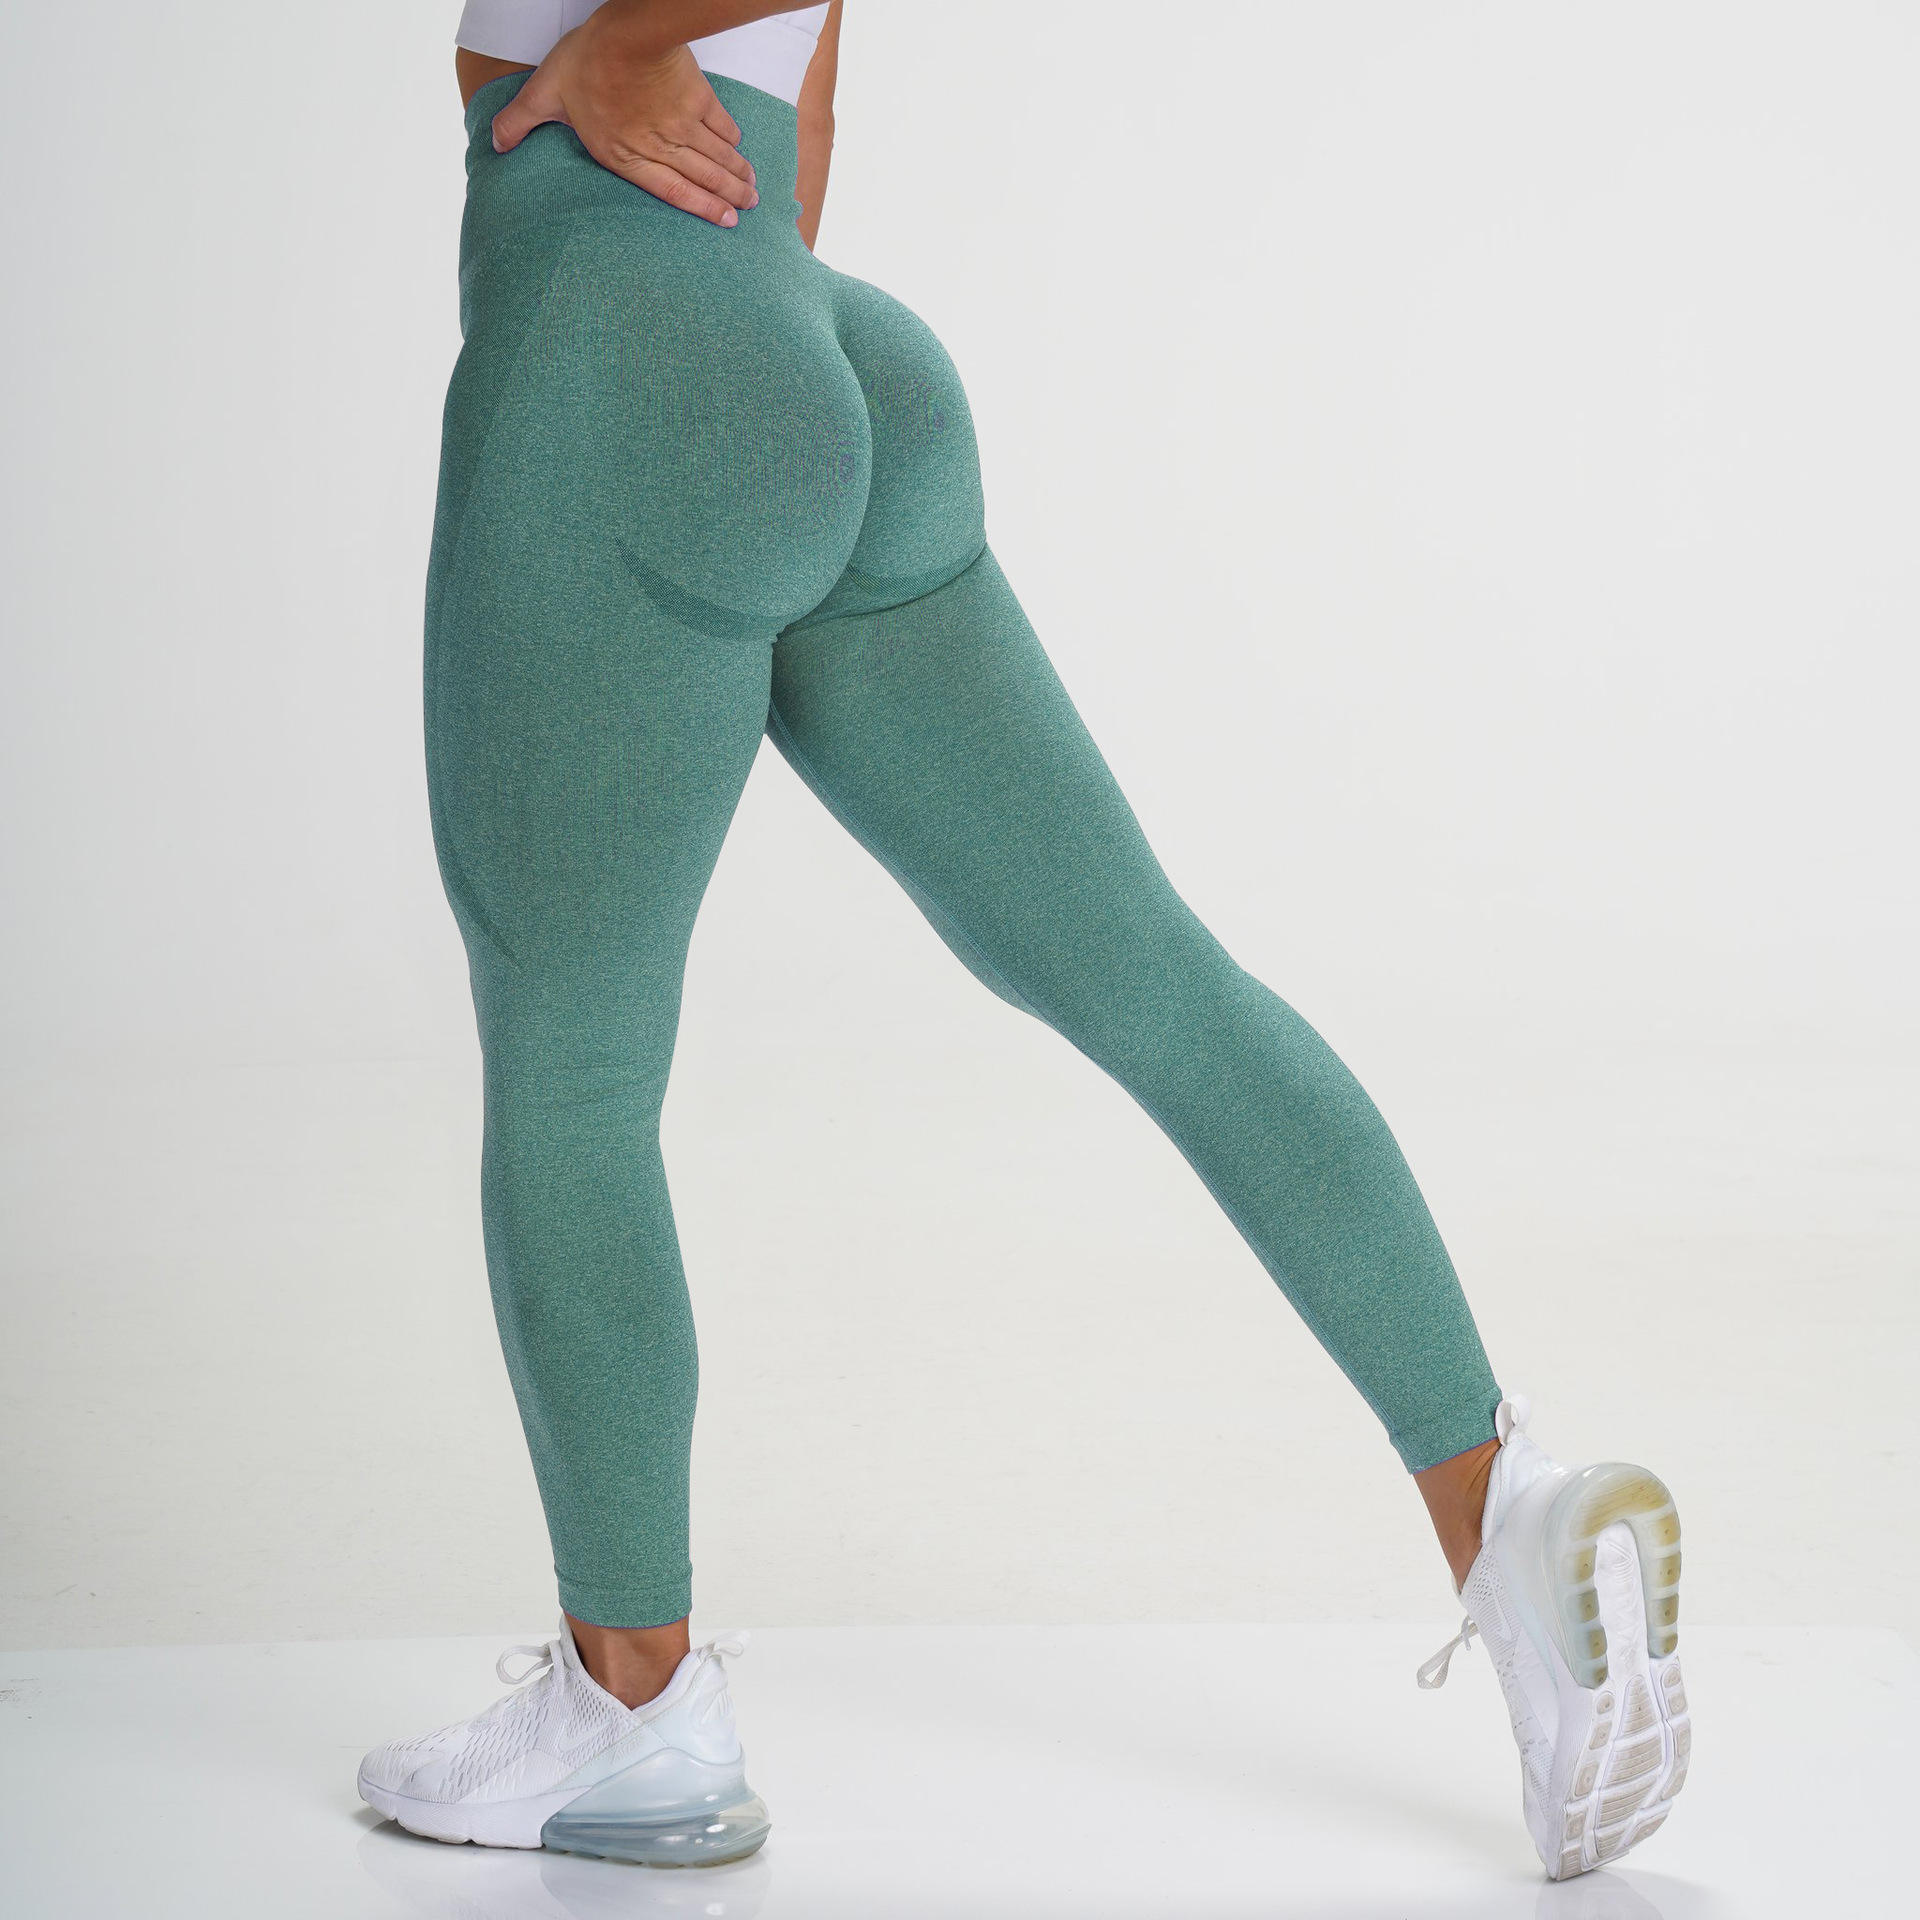 VS16 Hot Selling Custom Sport Yoga Hose Multifunktion ale Fitness Kleidung Reife Sexy Bilder Für Frauen Übung Leggings